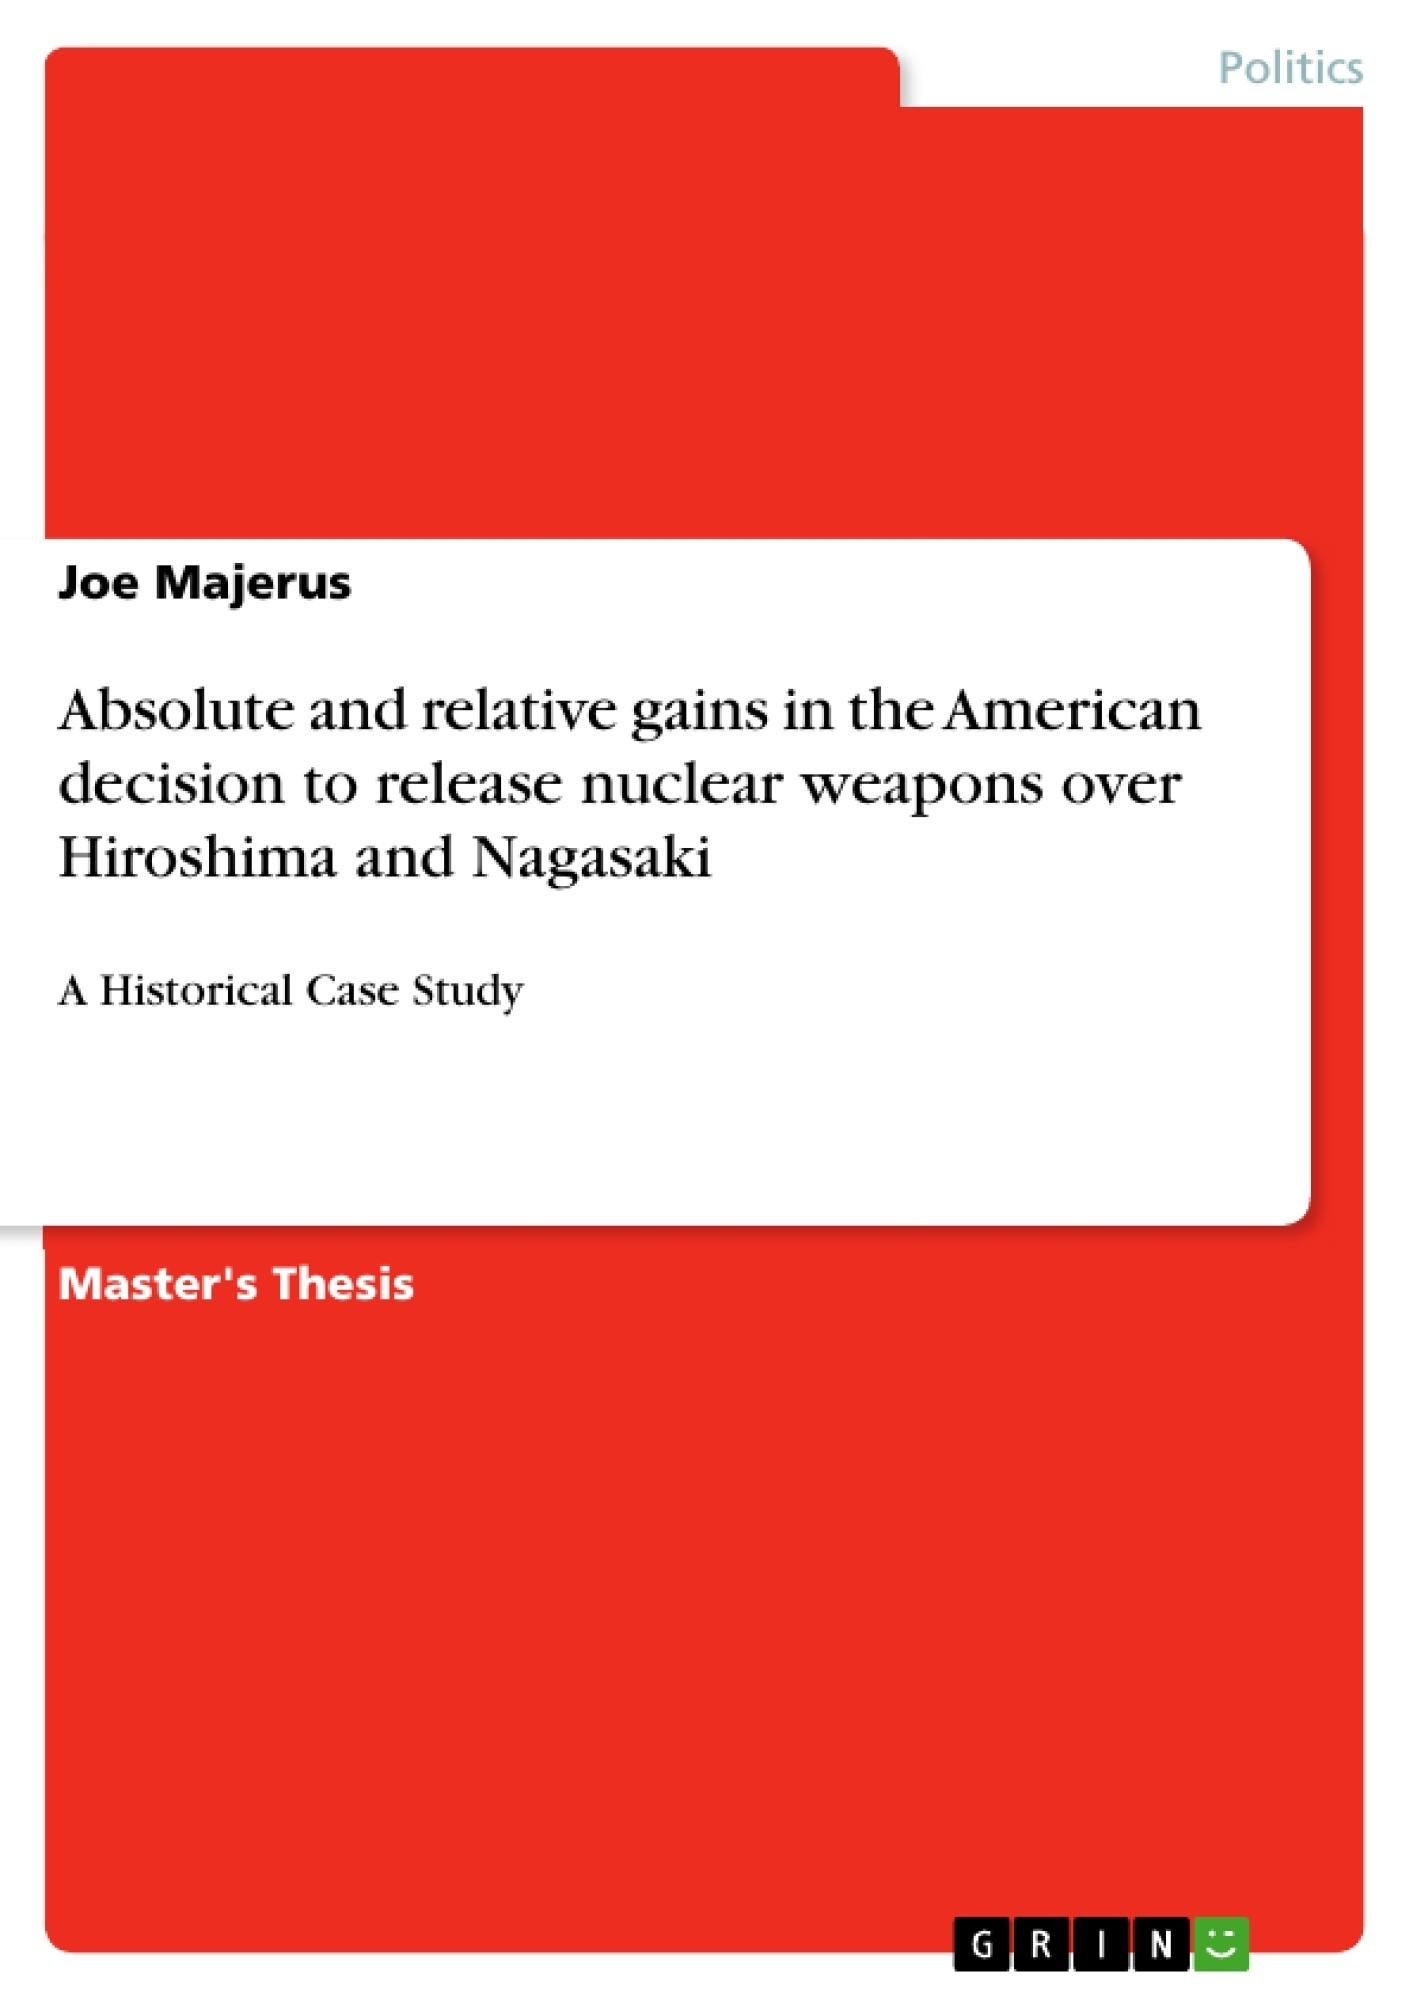 Title: Absolute and relative gains in the American decision to release nuclear weapons over Hiroshima and Nagasaki